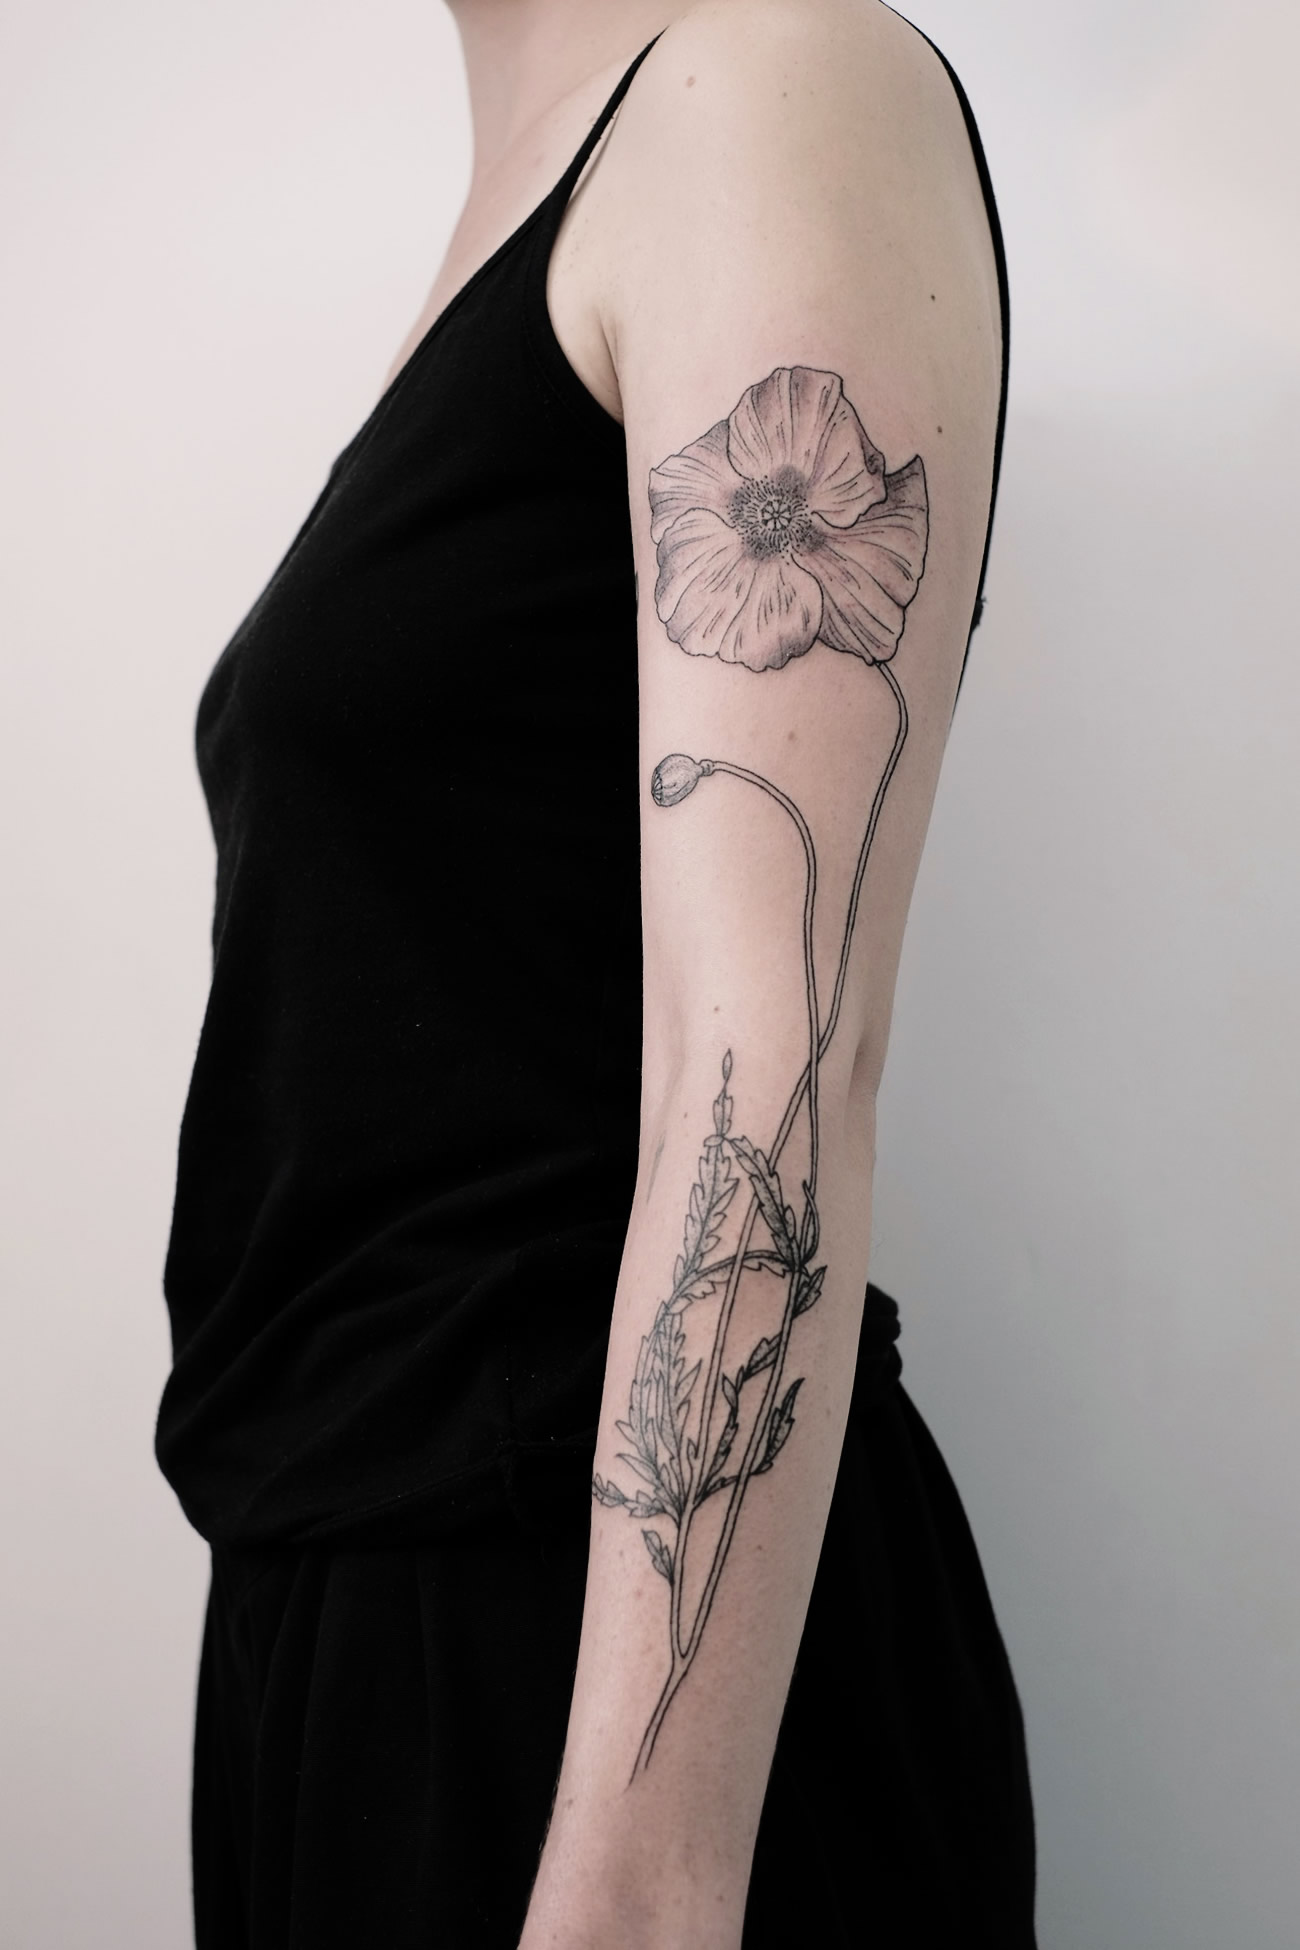 engraving style flower on arm by victor j webster